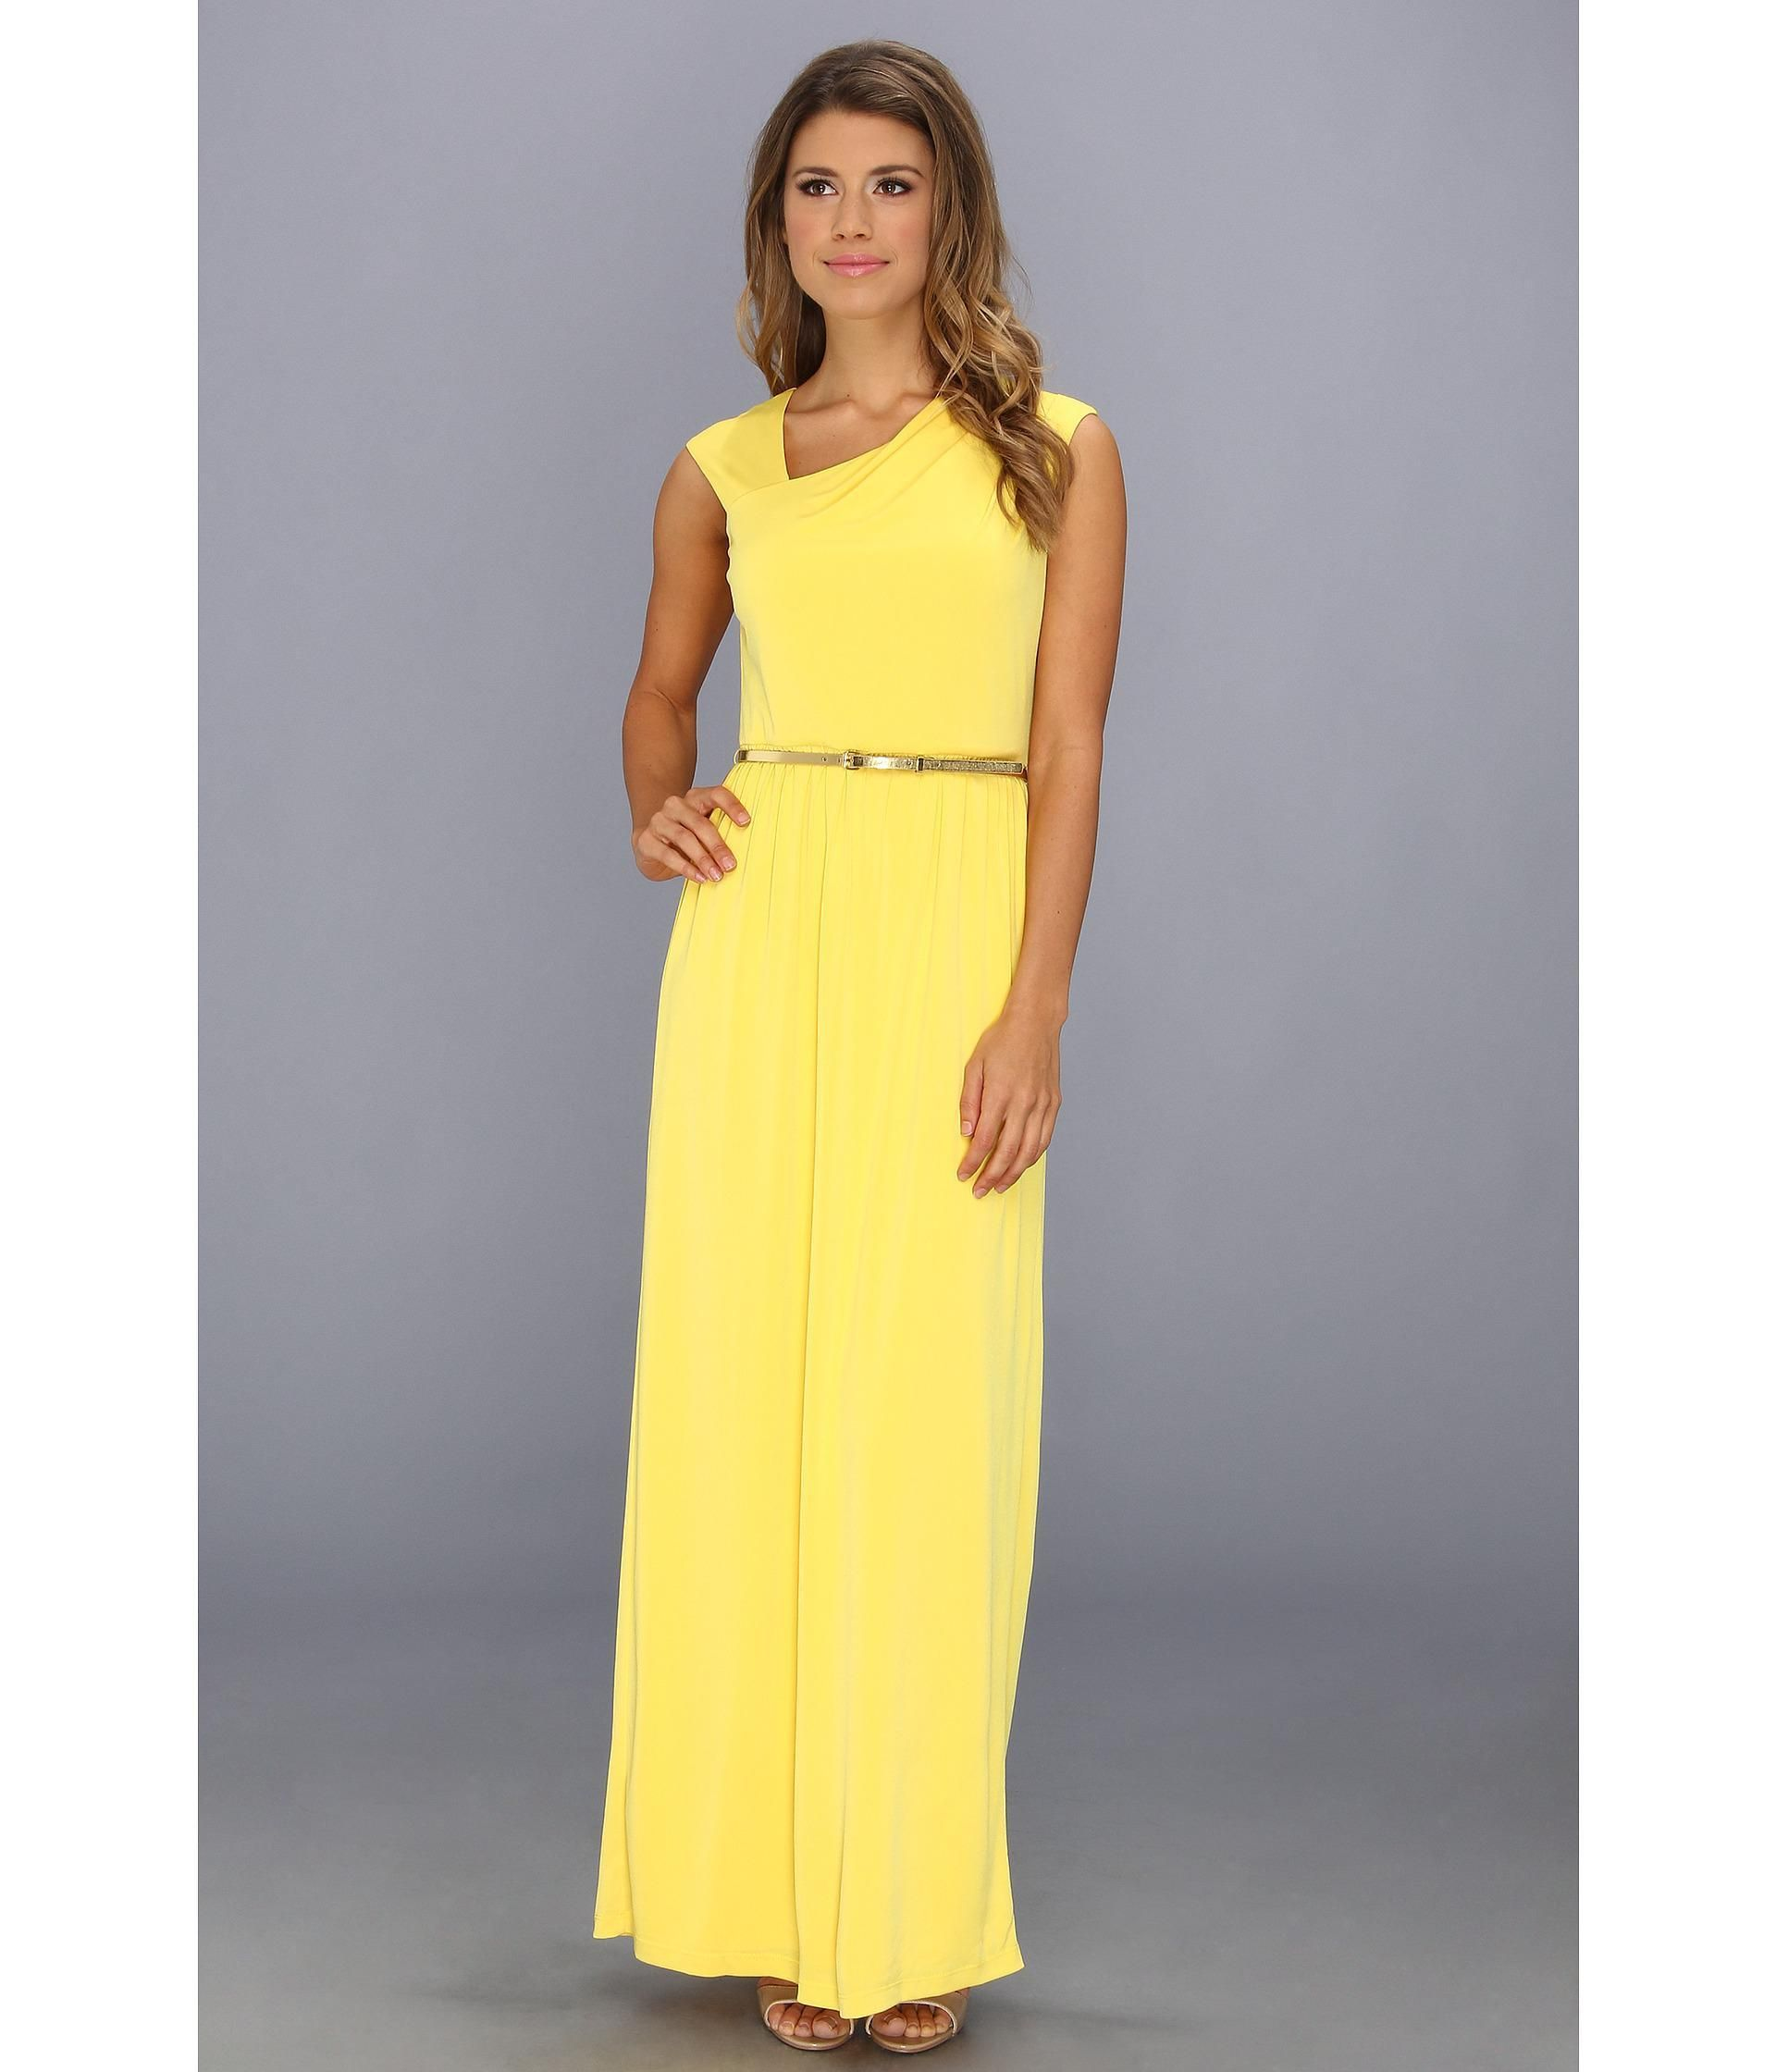 Stretchpoly maxi dress in a classically elegant oneshoulder